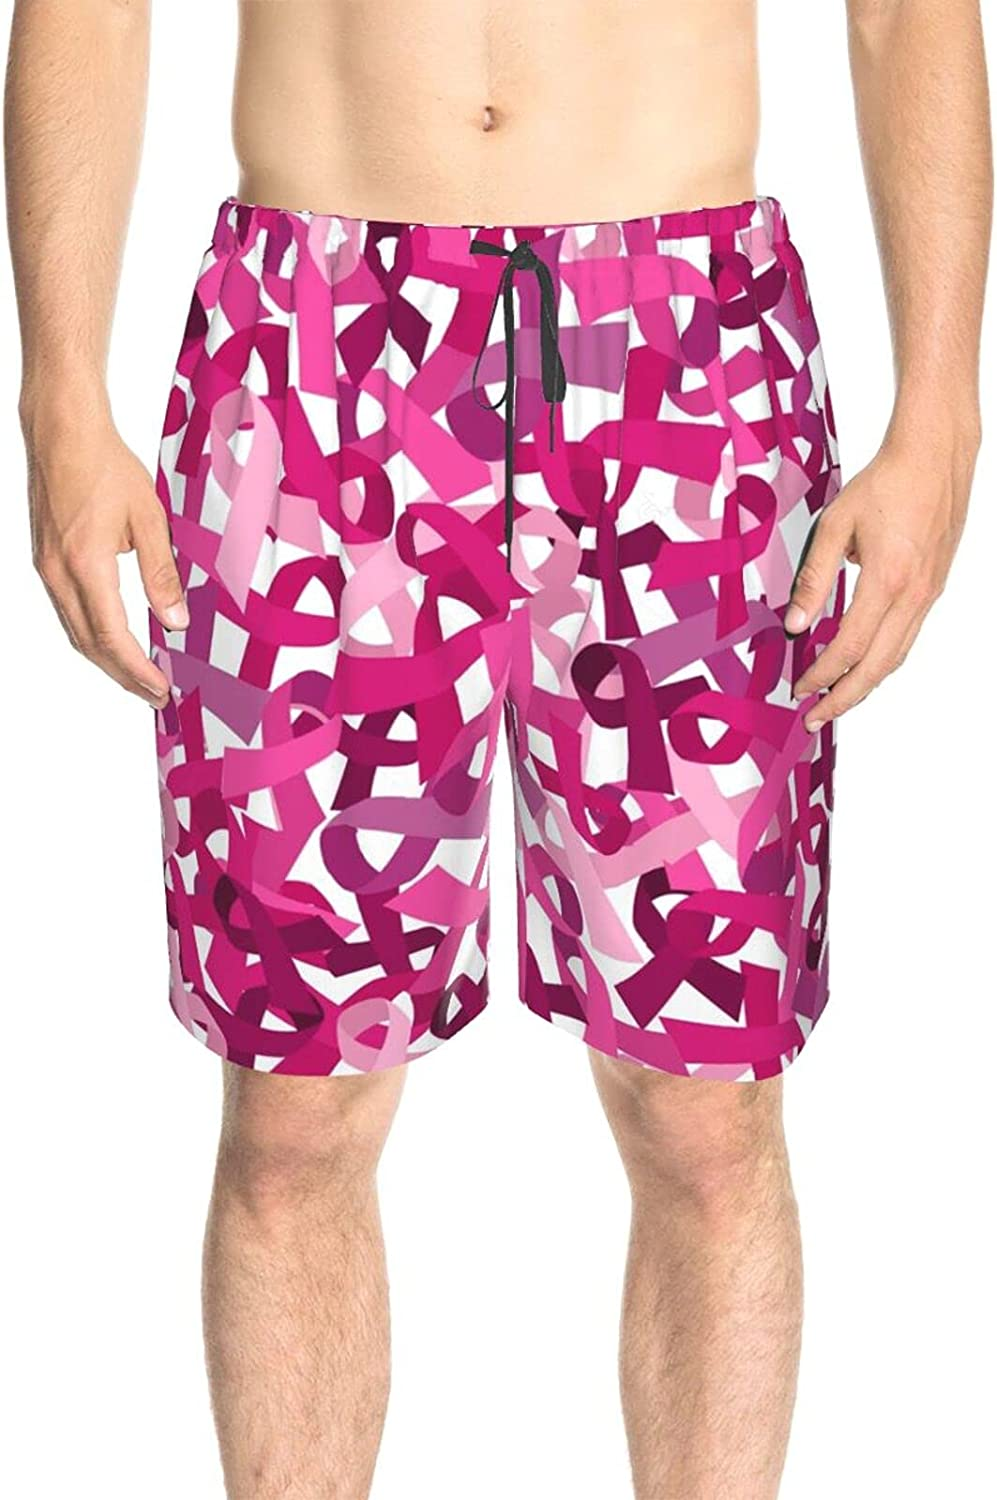 JINJUELS Mens Swim Trunks Breast Cancer Pink Ribbon Bathing Suit Boardshorts Quick Dry Comfy Summer Boardshorts with Lining